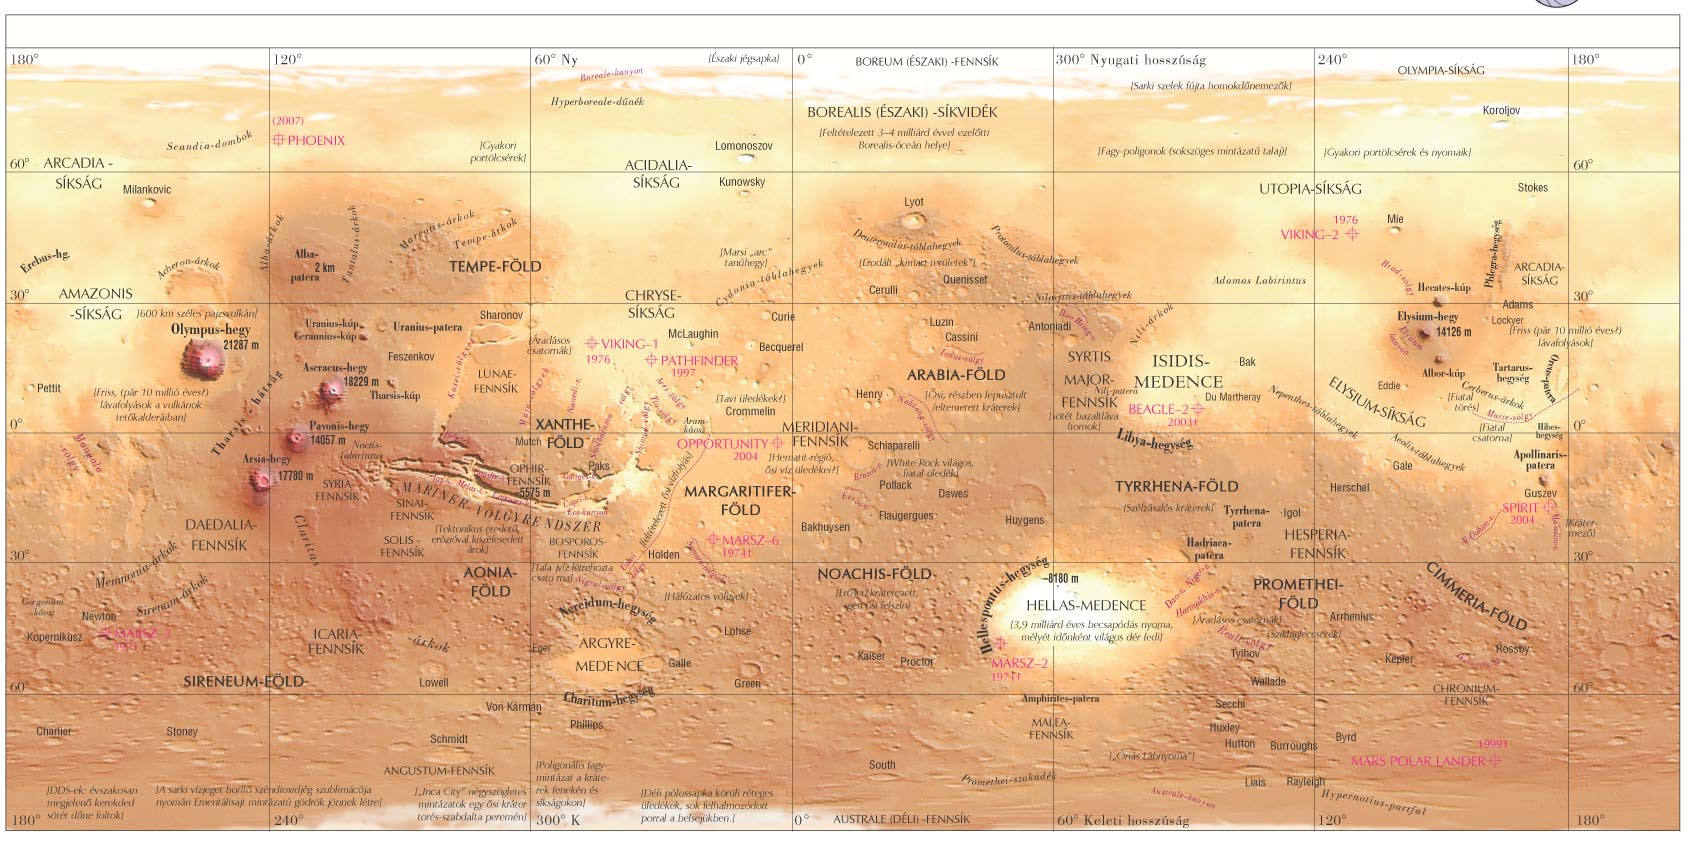 Topogr f 39 s Map of Mars